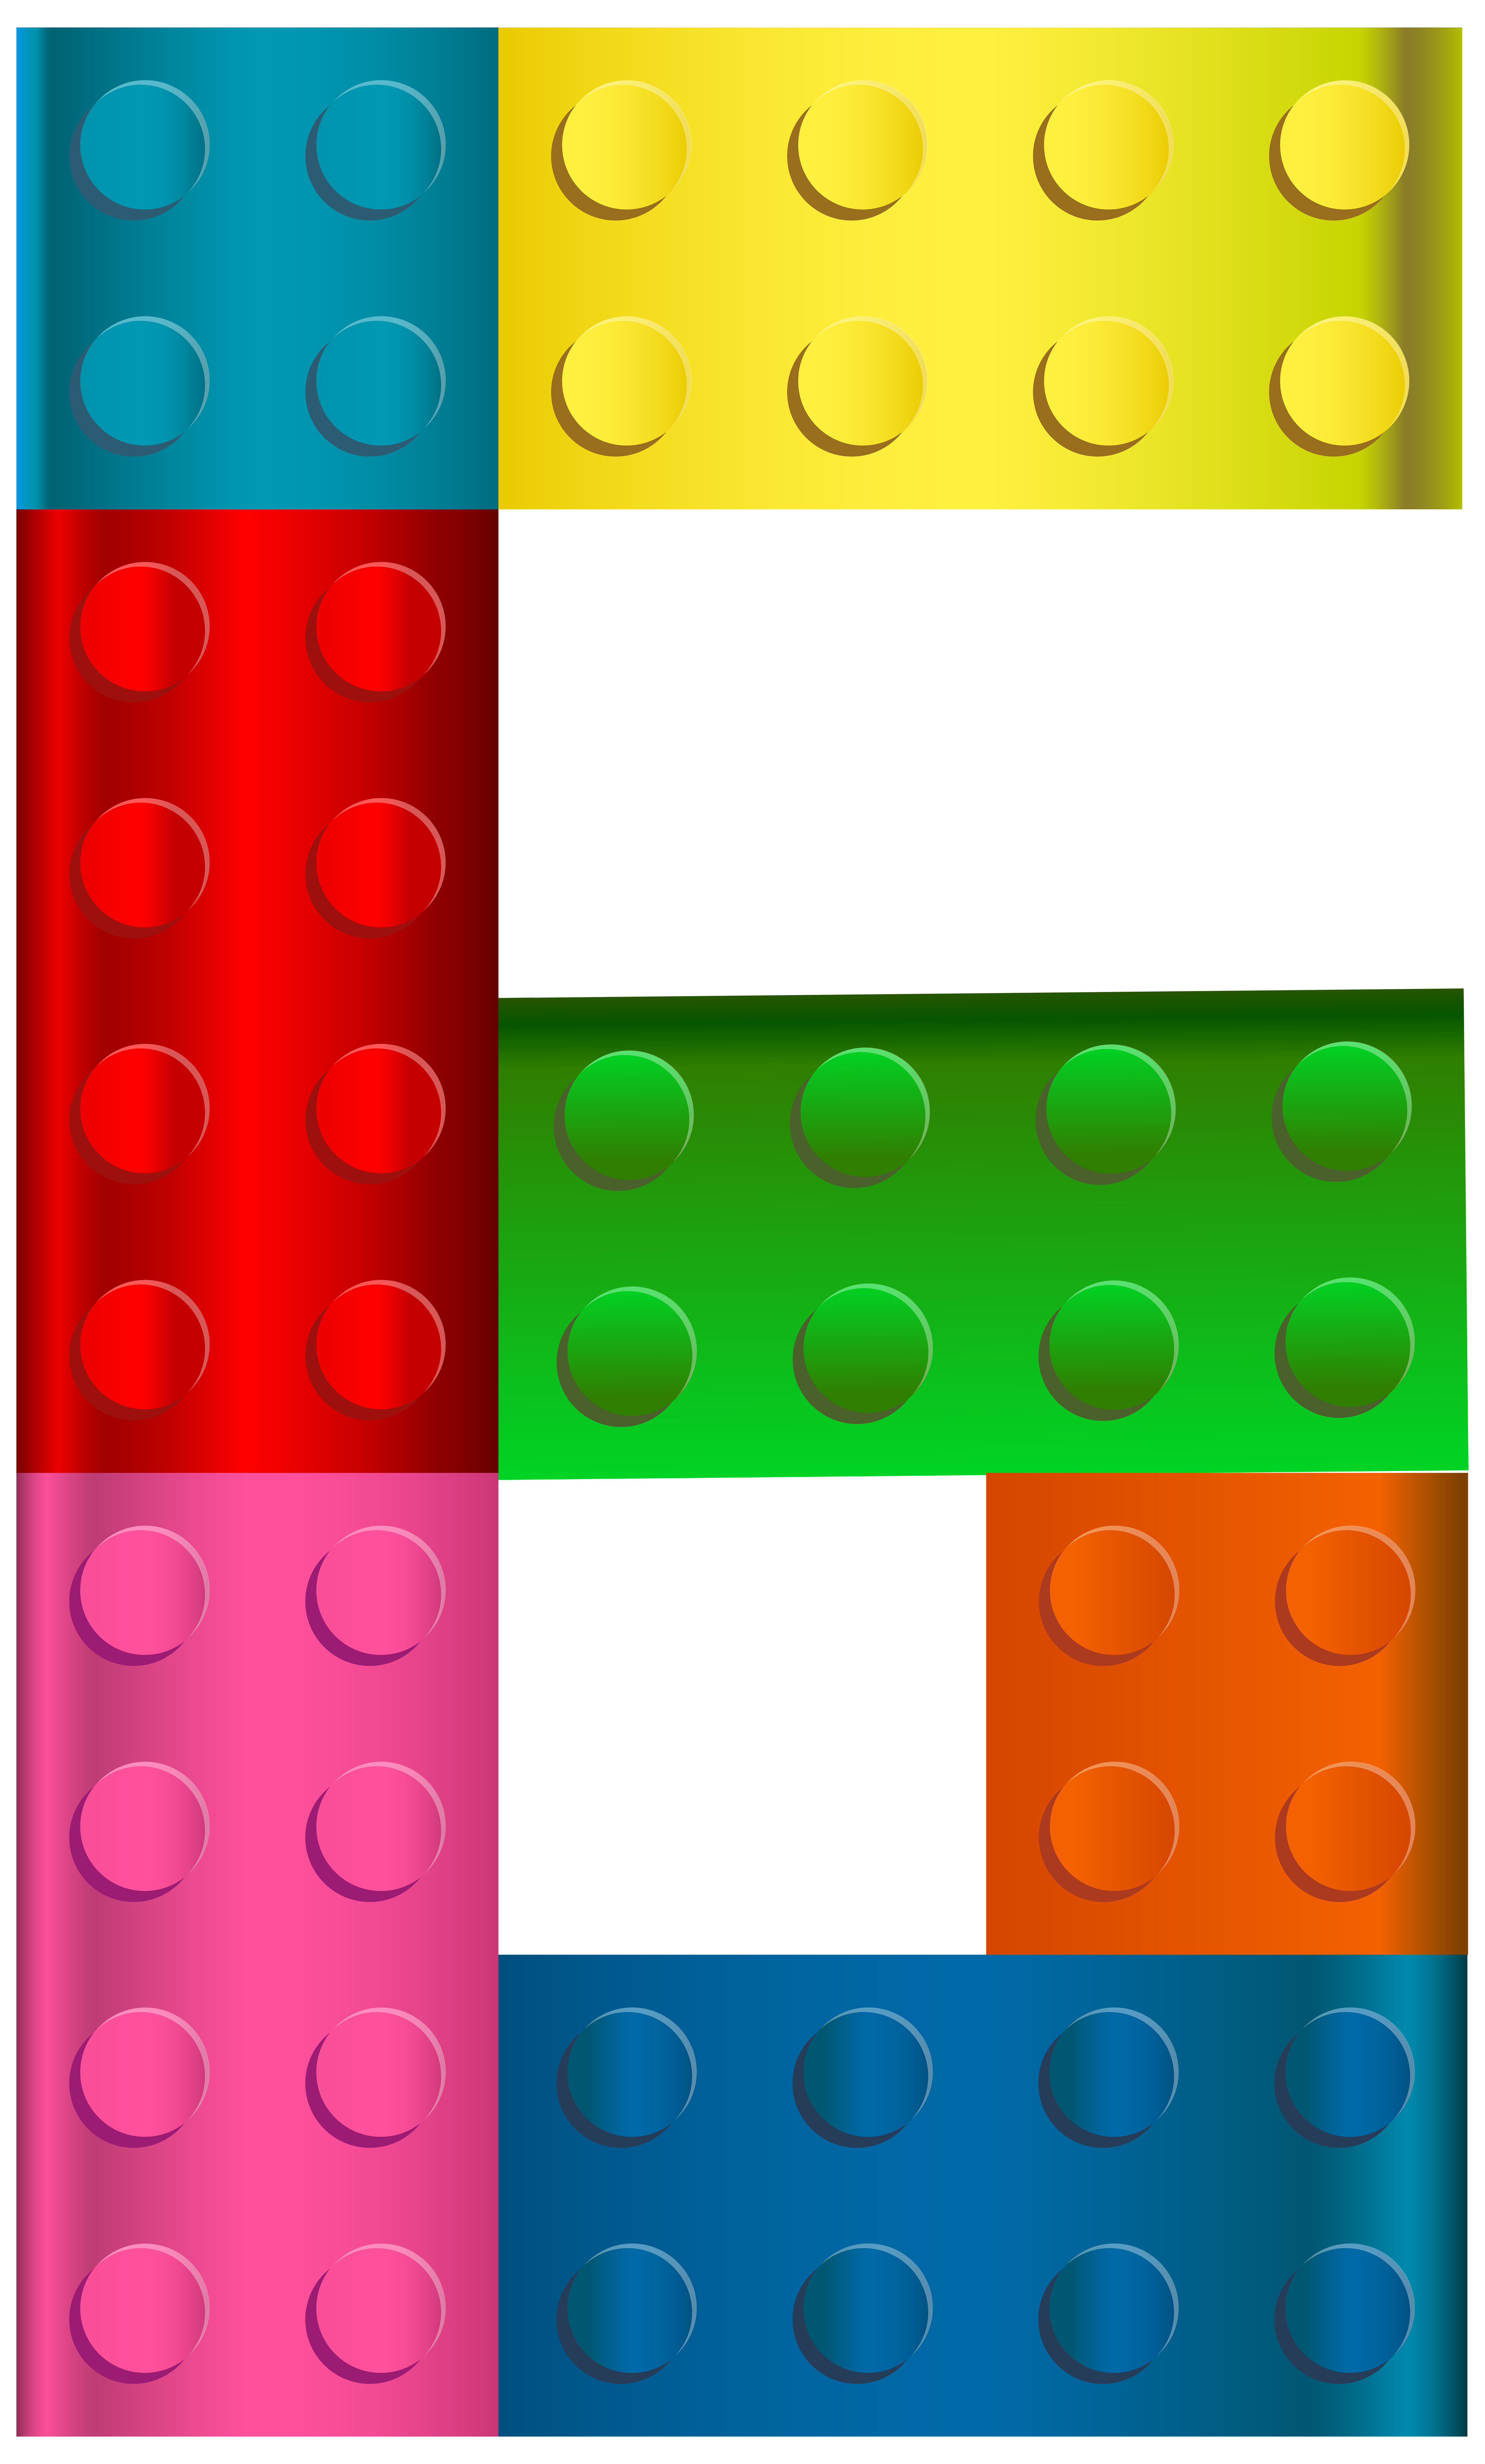 Lego clipart png freeuse download Lego Number Six PNG Transparent Clip Art Image | Gallery ... png freeuse download